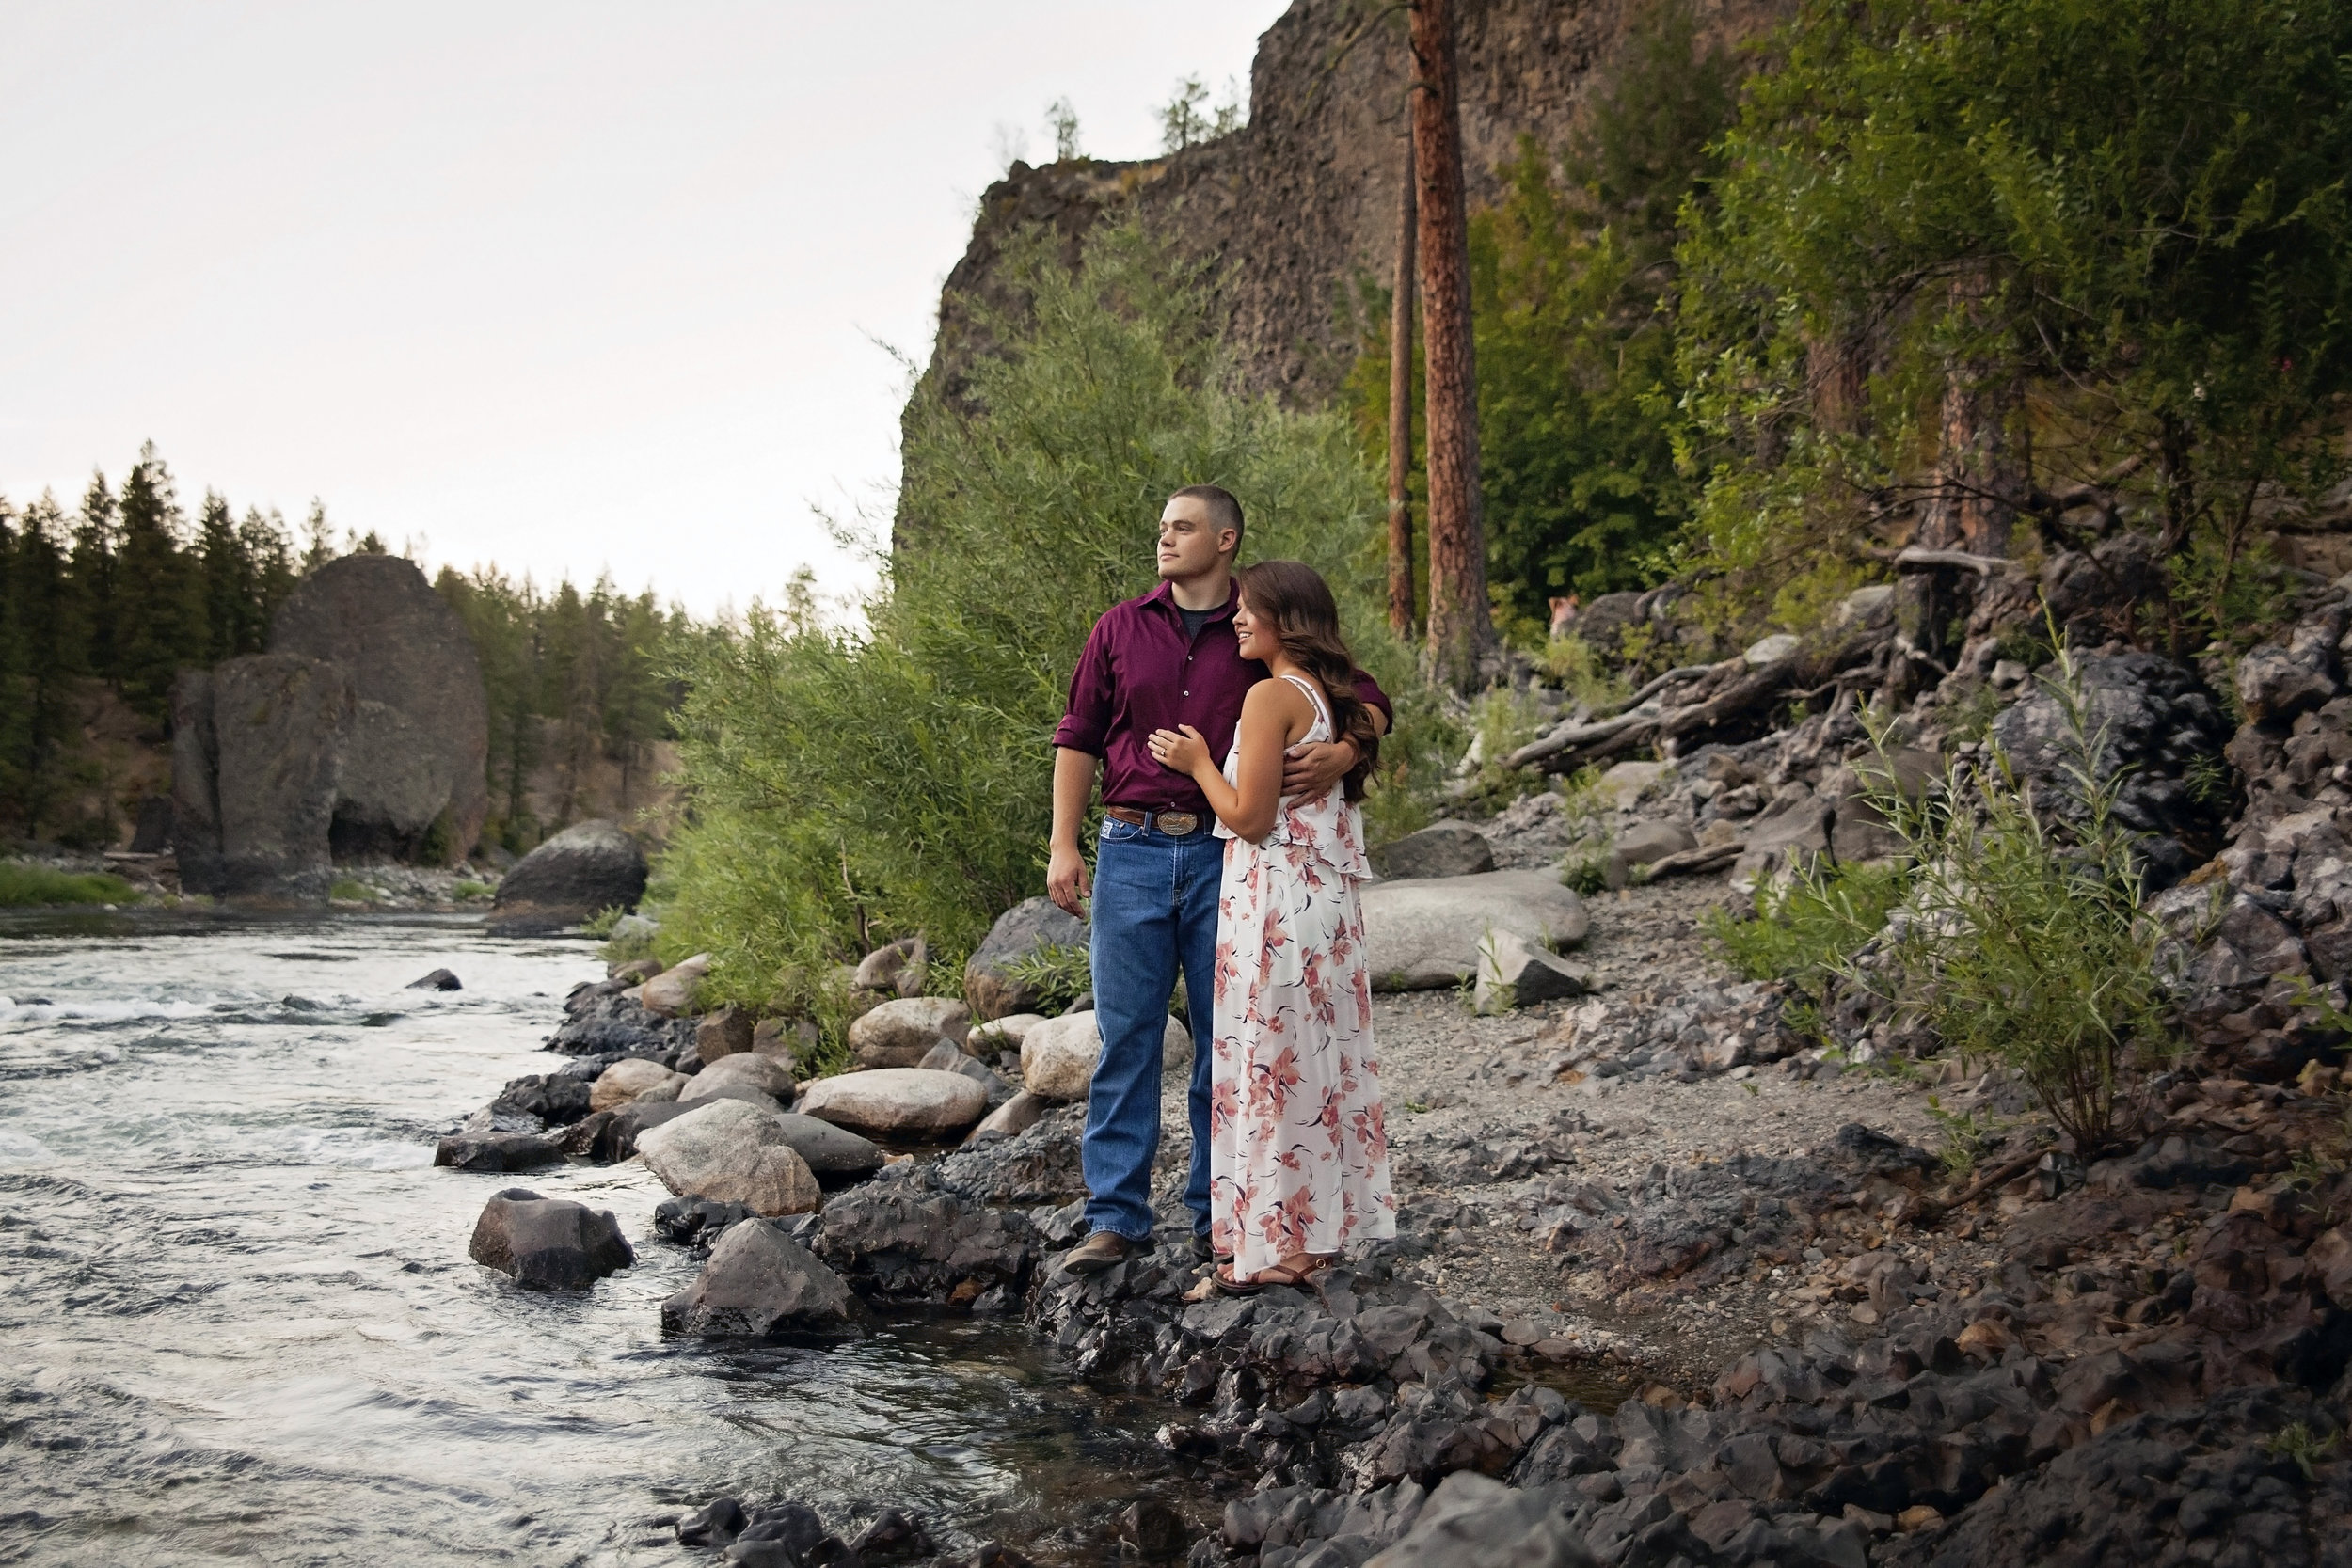 Pullman couple gets woody engagement pictures near spokane river